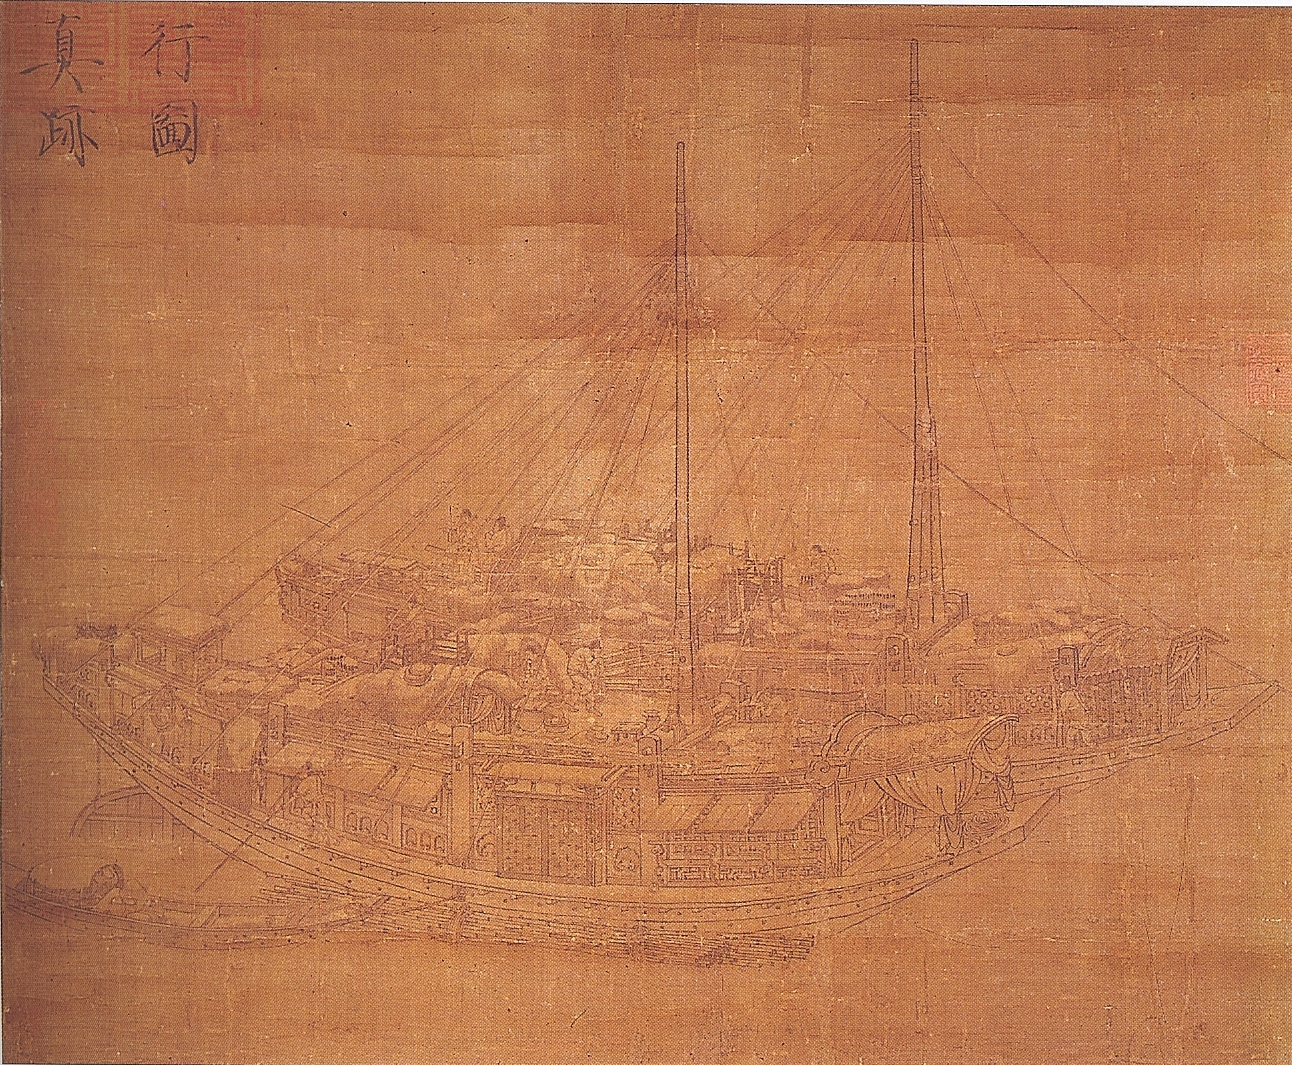 A faded drawing of two ships,